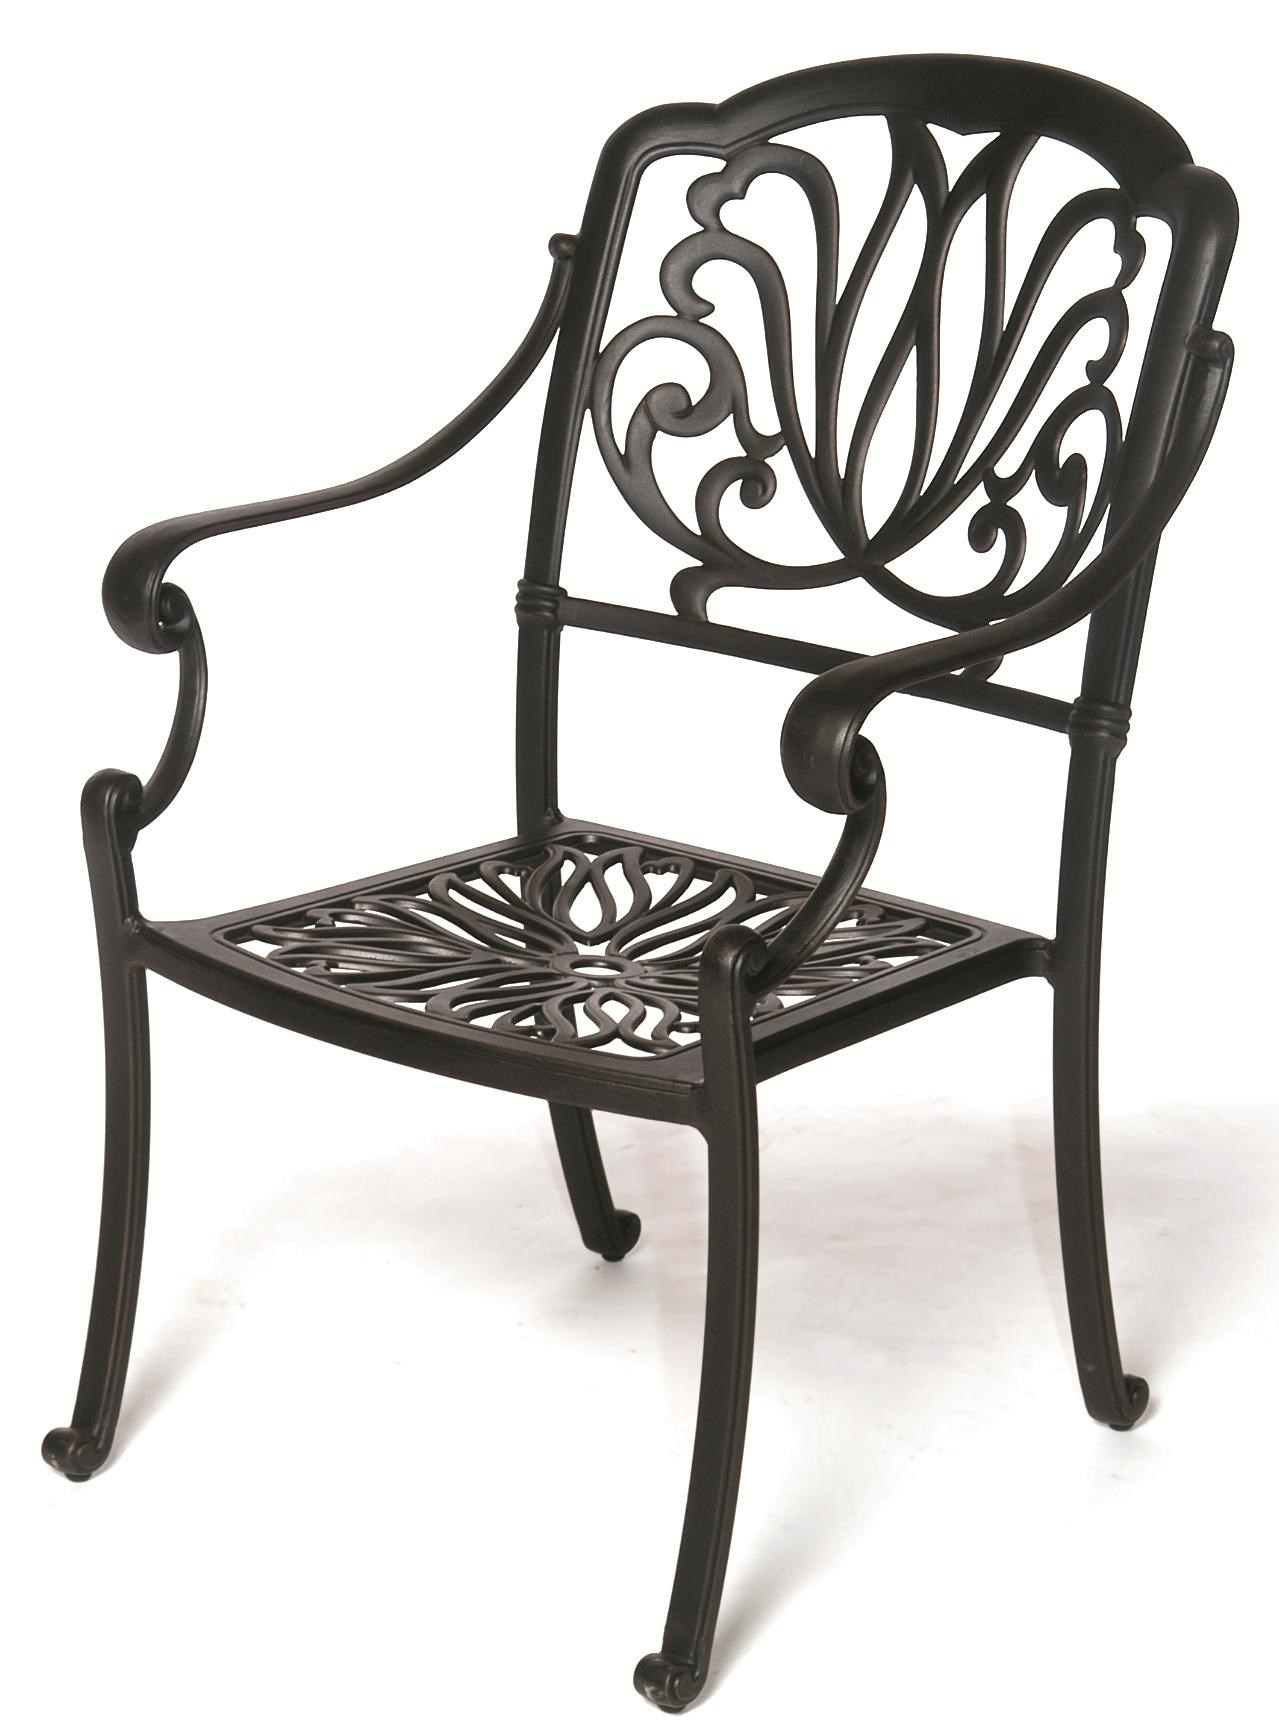 biscayne outdoor aluminum arm chair with ornate casting and shapely legs by hanamint